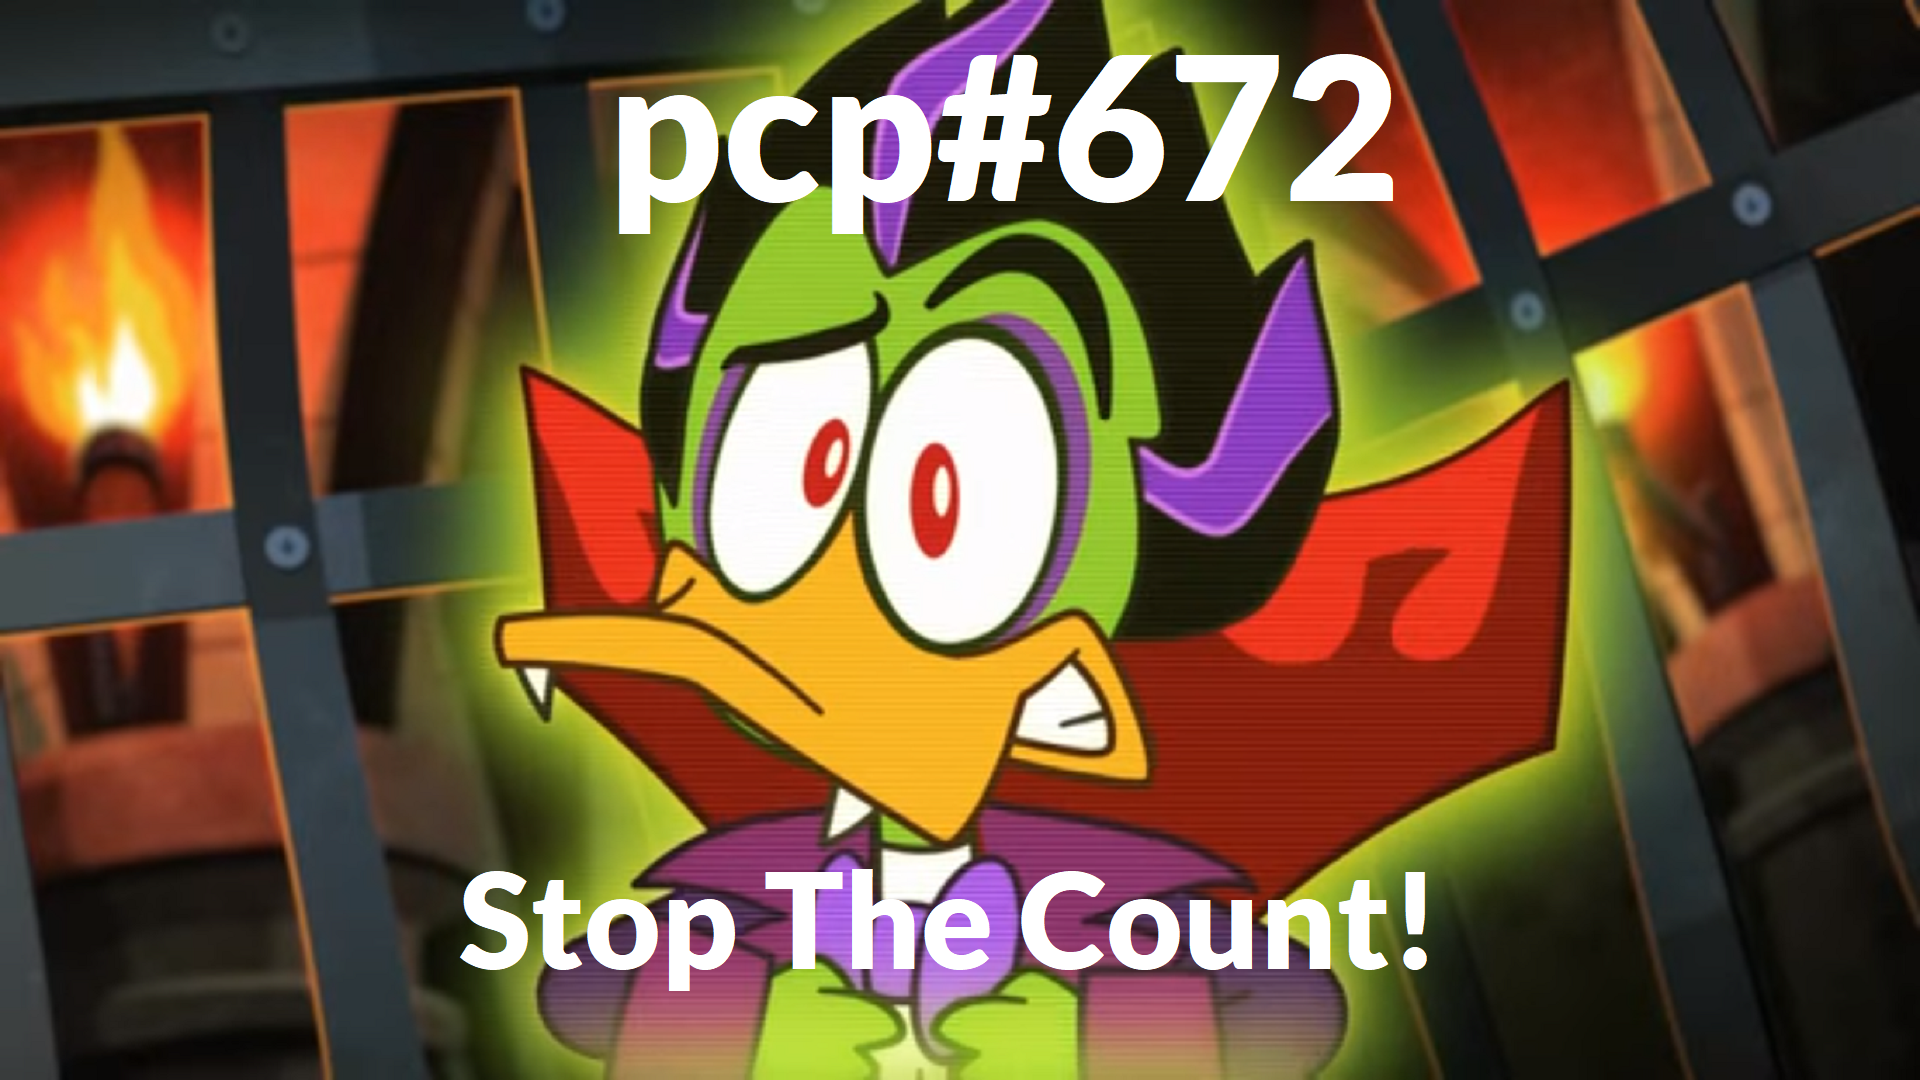 PCP#672… Stop The Count!…